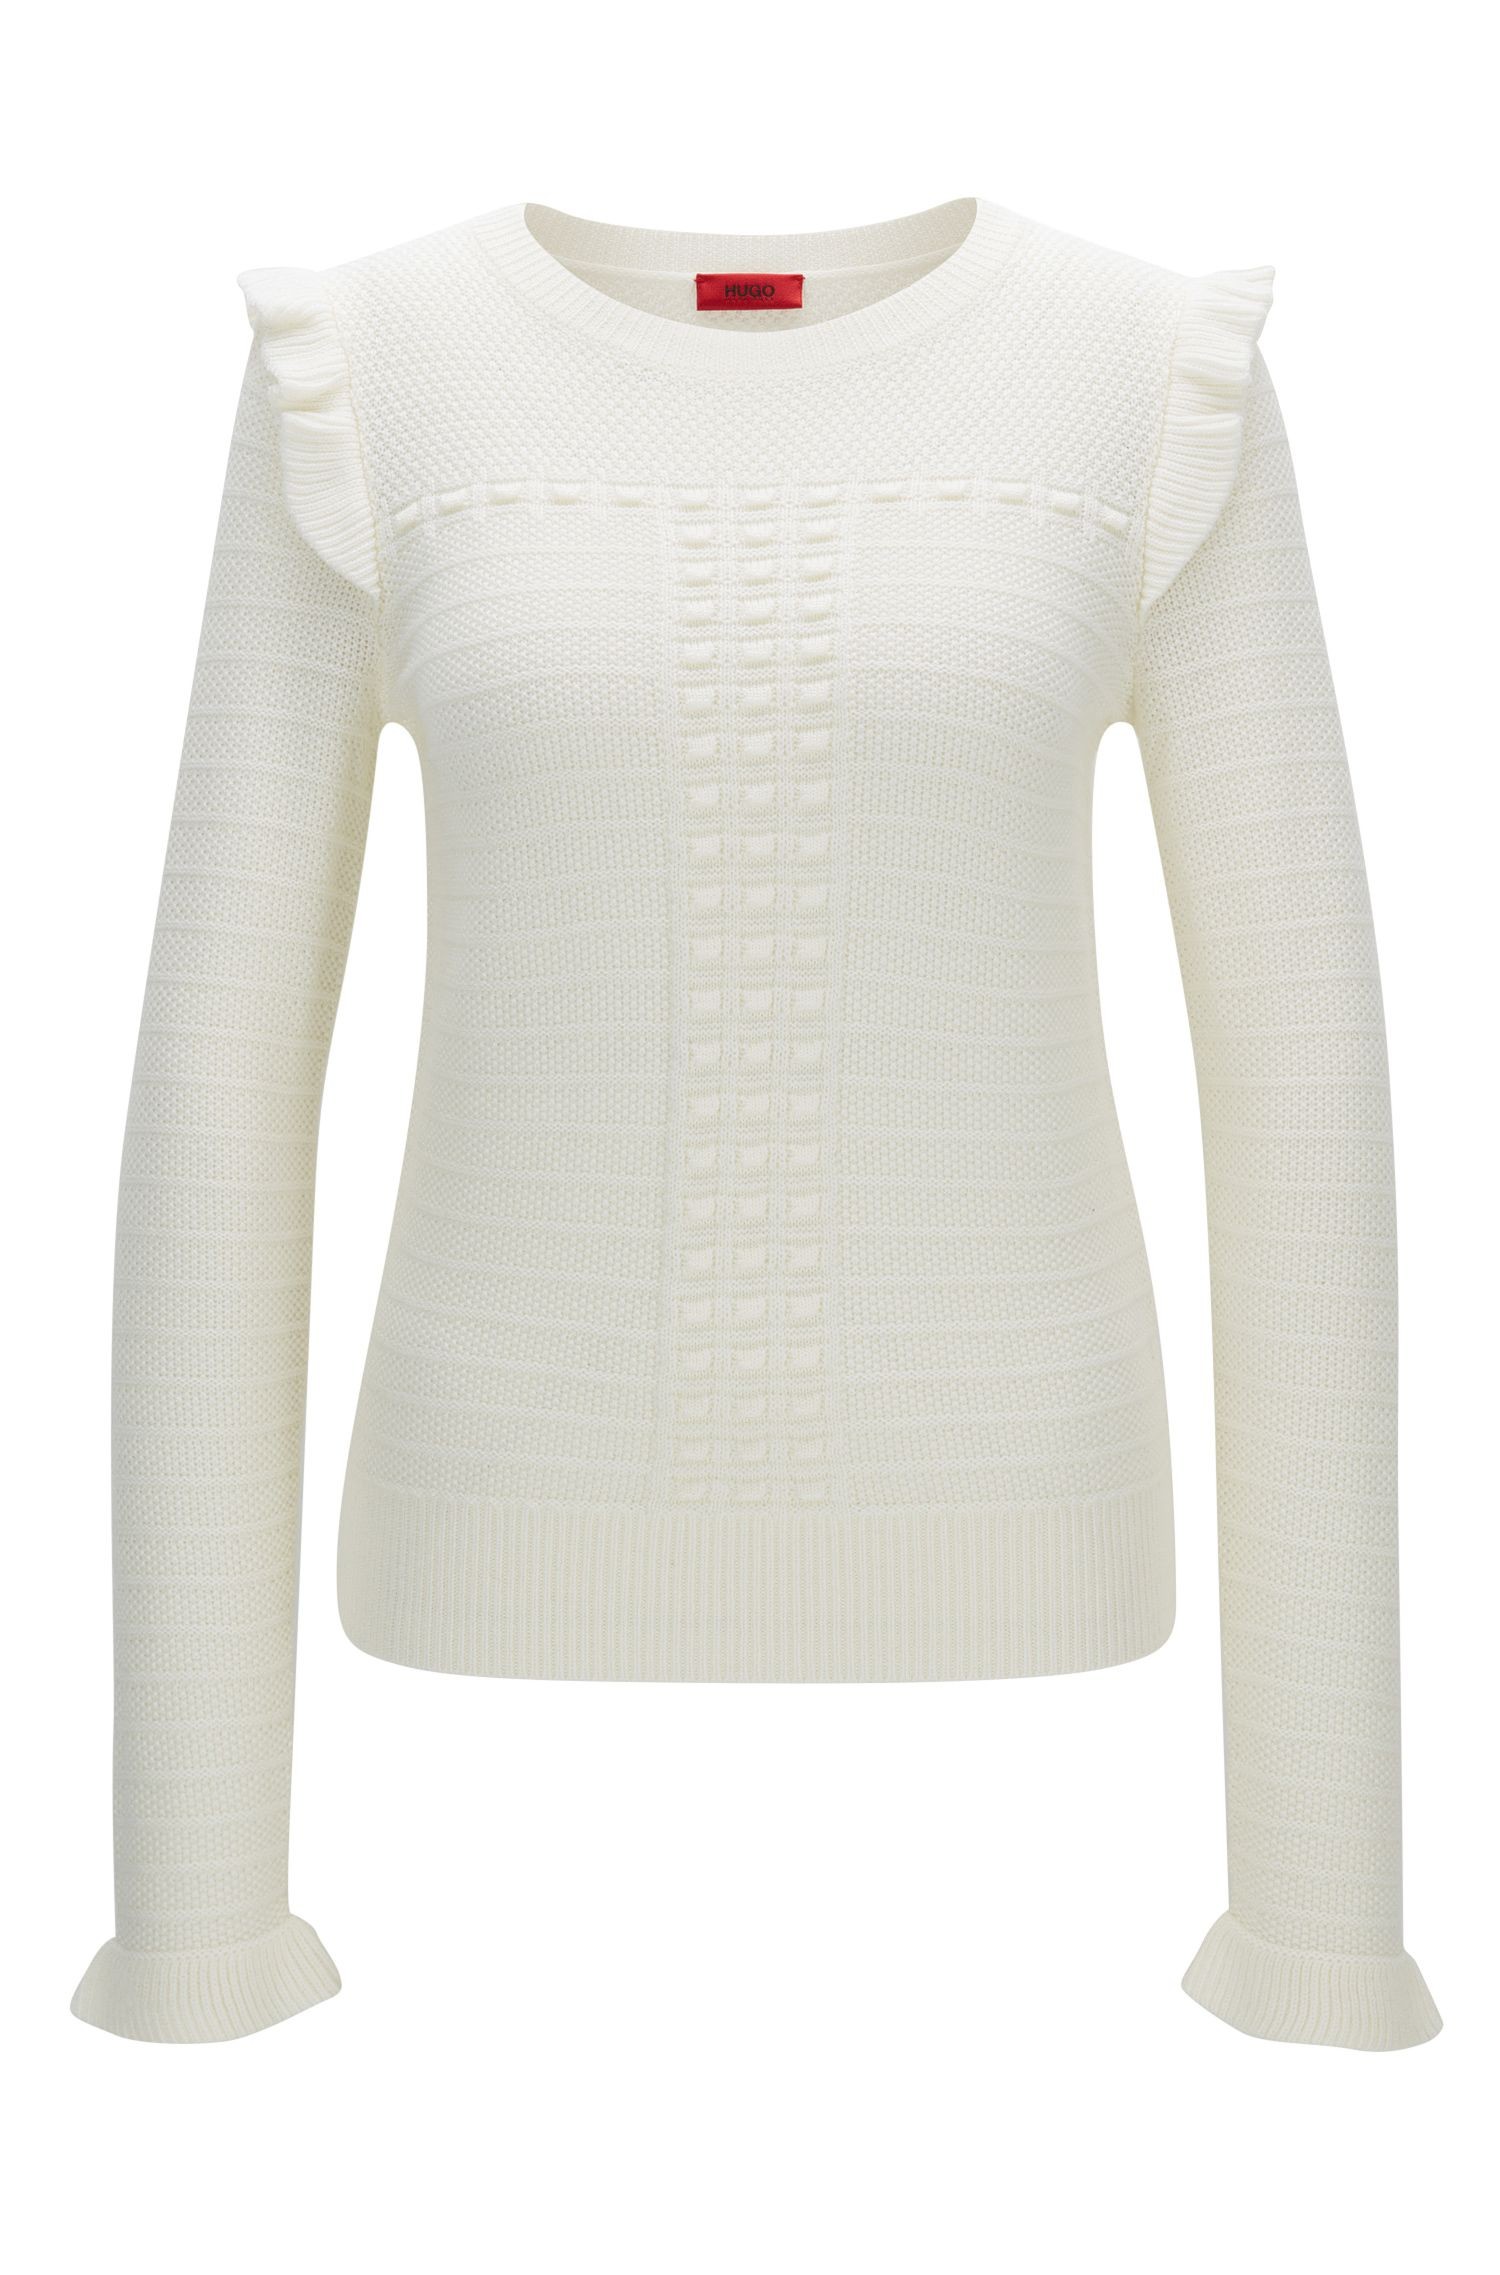 Structured sweater in merino wool with ruffle detail